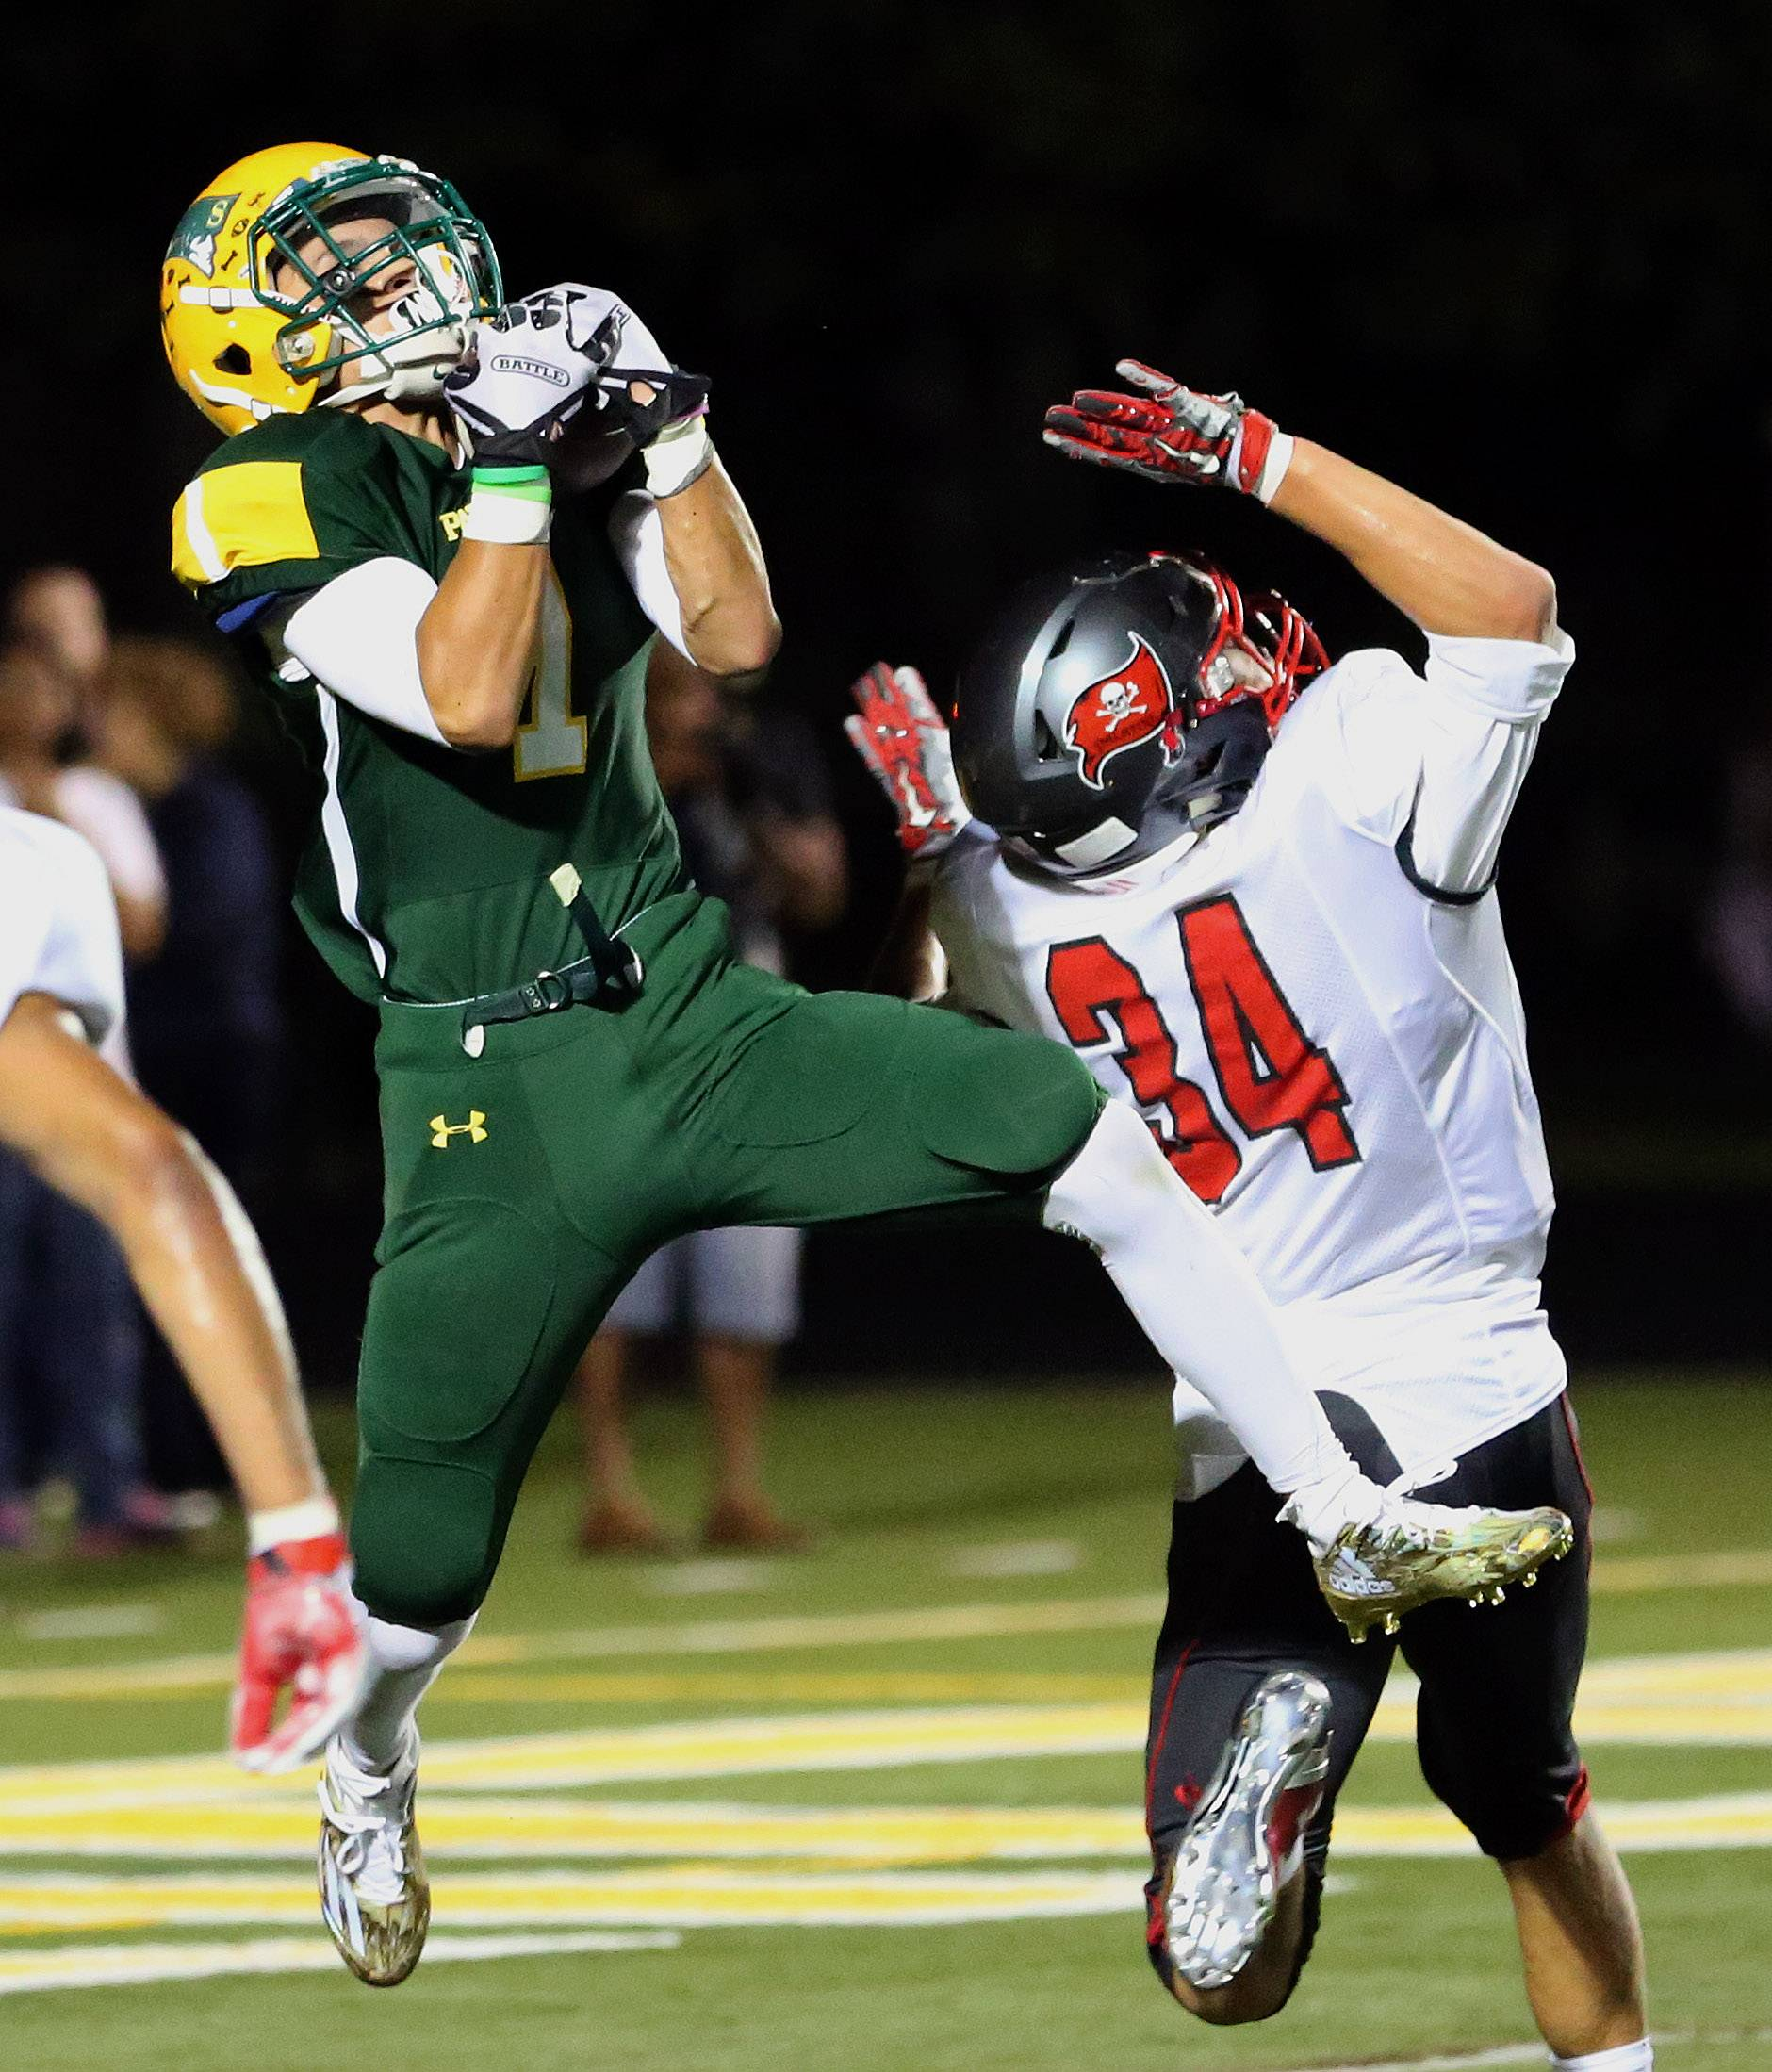 Stevenson's Noah Lukz, left, catches a pass for a touchdown on Palatine's John Streepy.